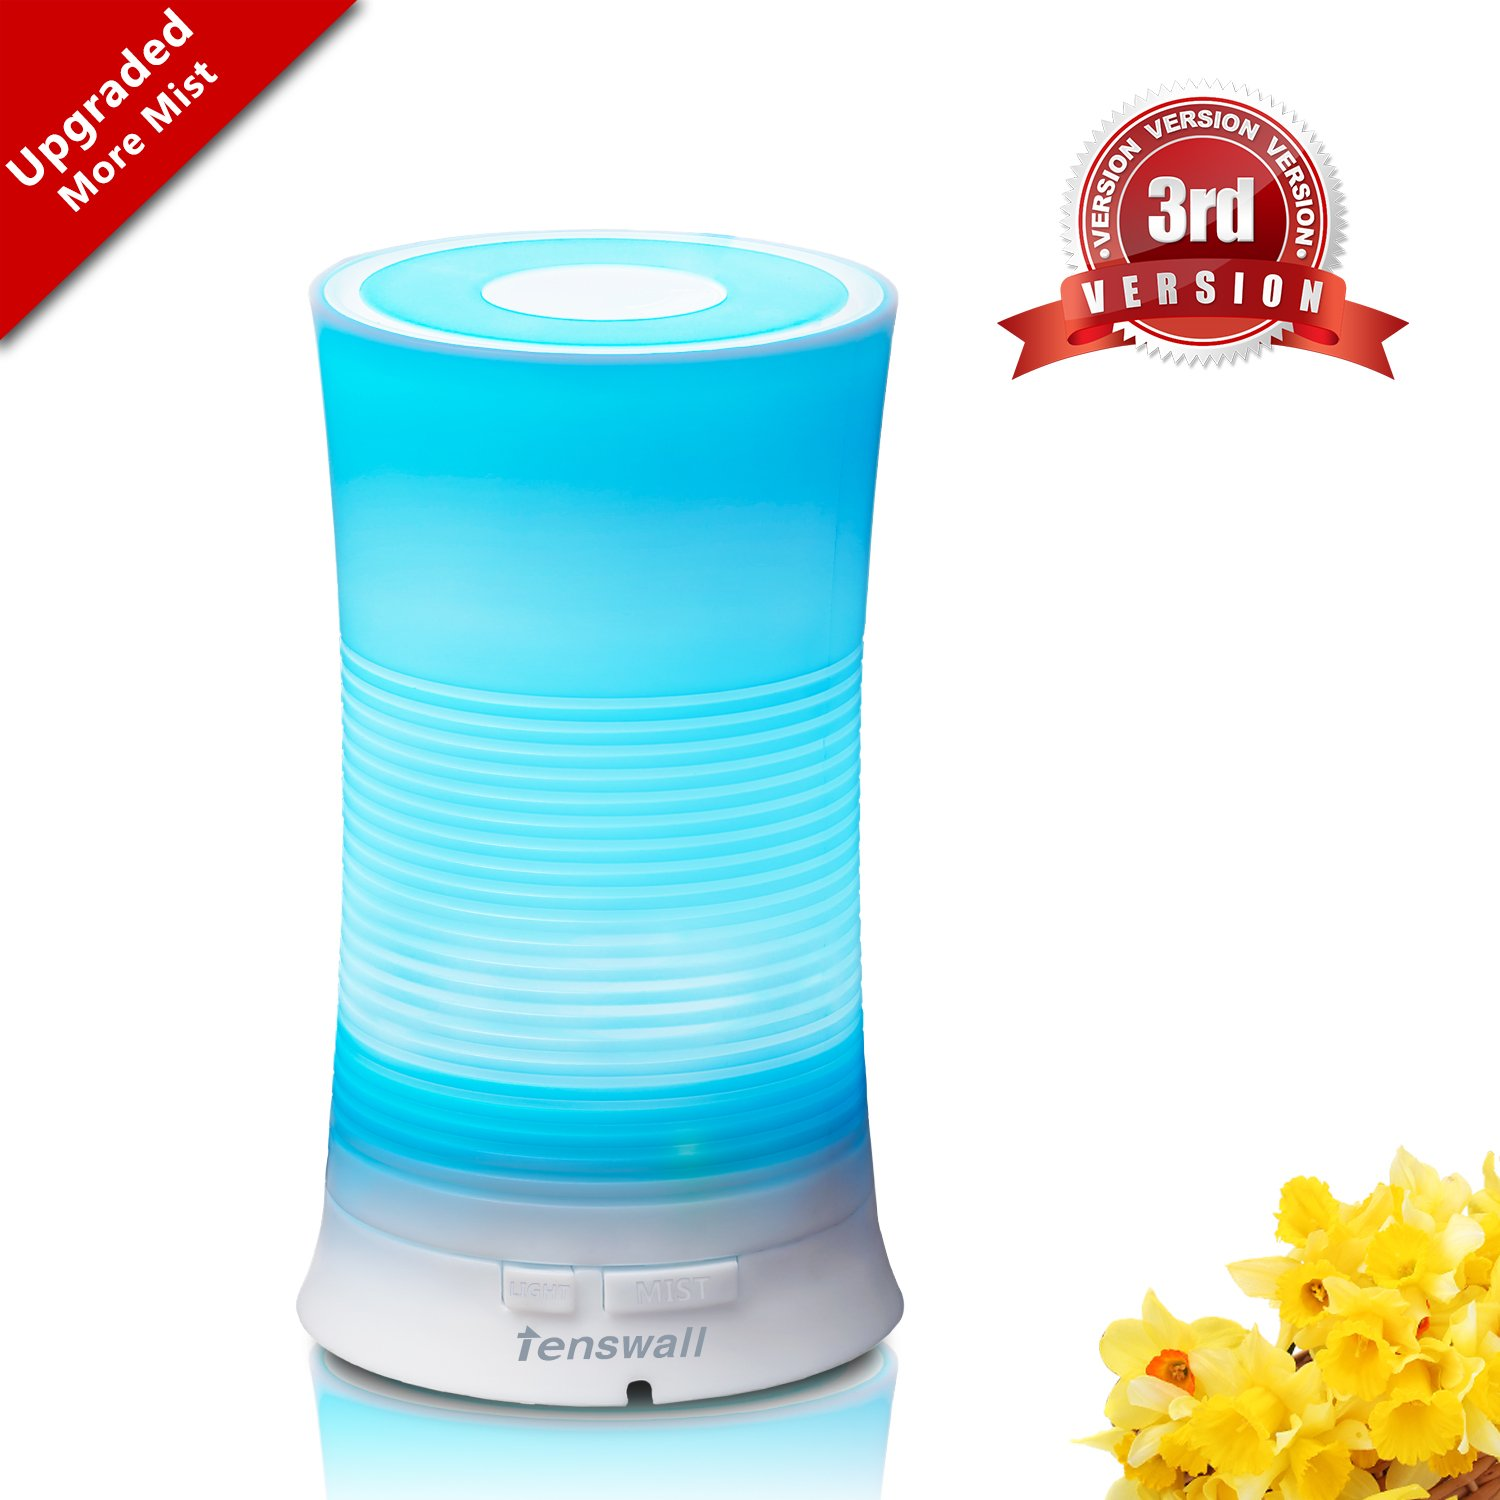 Tenswall Aroma Ultrasonic Essential Oil Diffuser